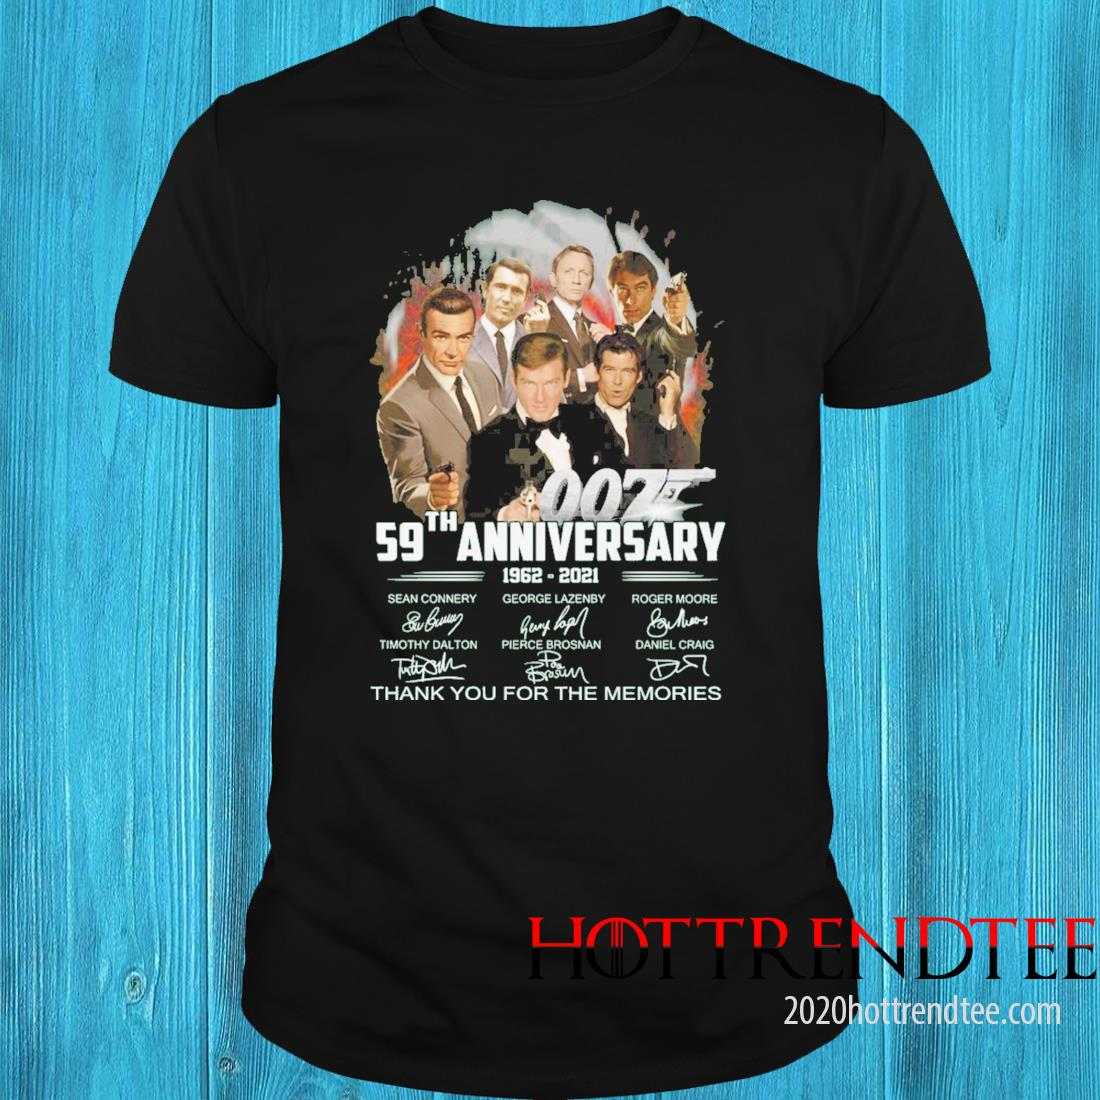 007 59th Anniversary 1962 2021 Signatures Thank You For The Memories Shirt